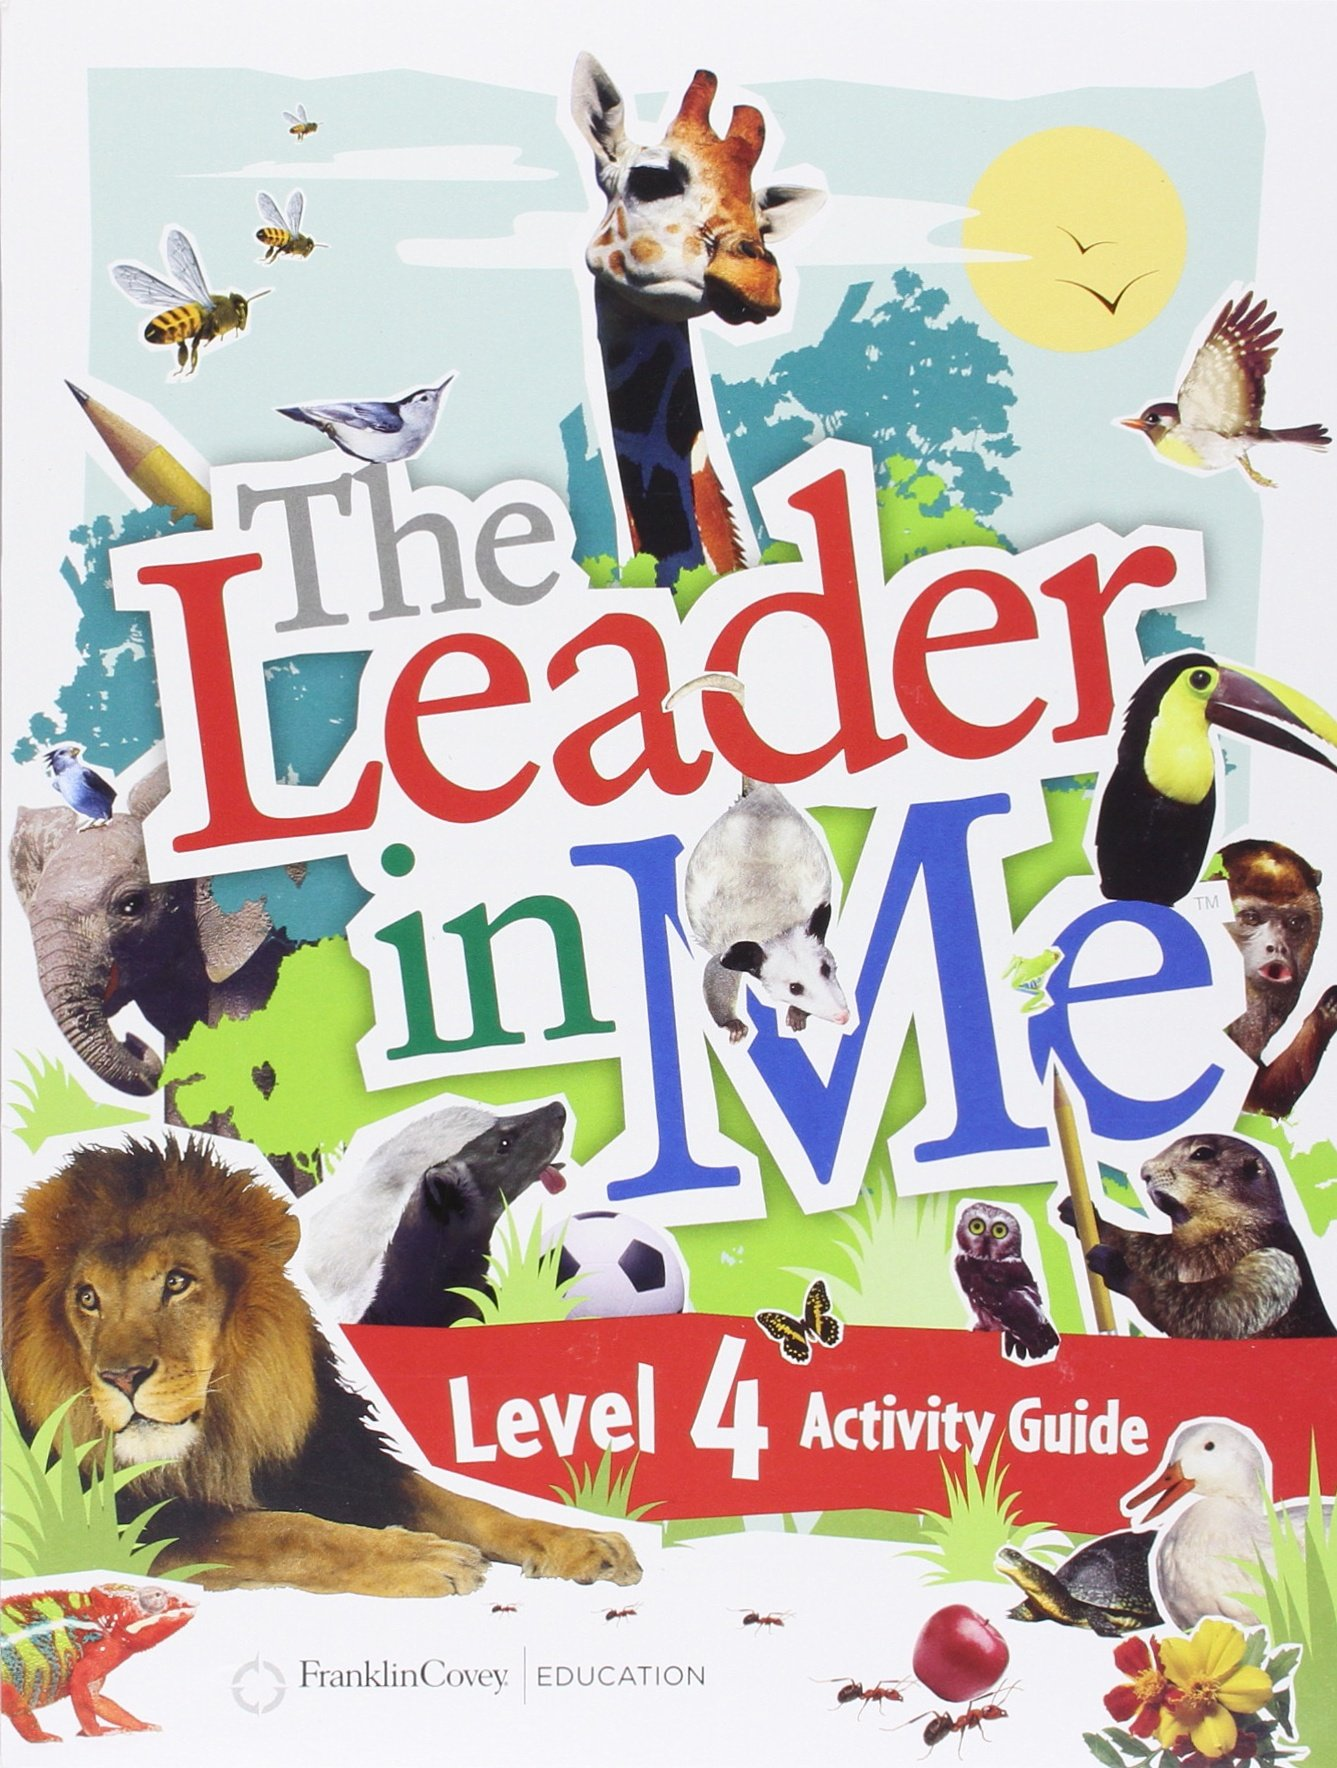 The Leader In Me Activity Guide Level 4: FranklinCovey: 9781933976983:  Amazon.com: Books